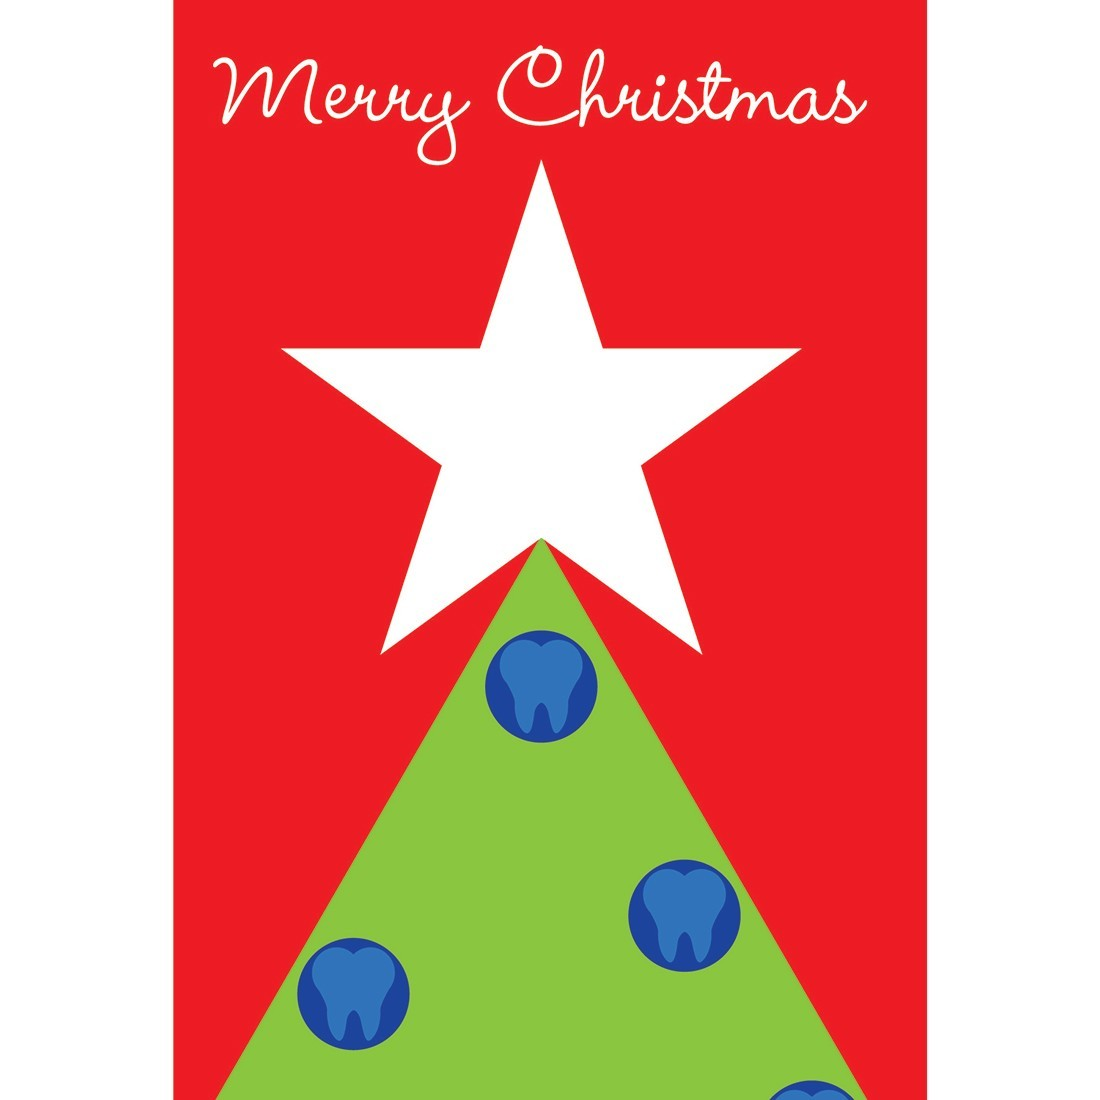 Merry Christmas Greeting Cards [image]